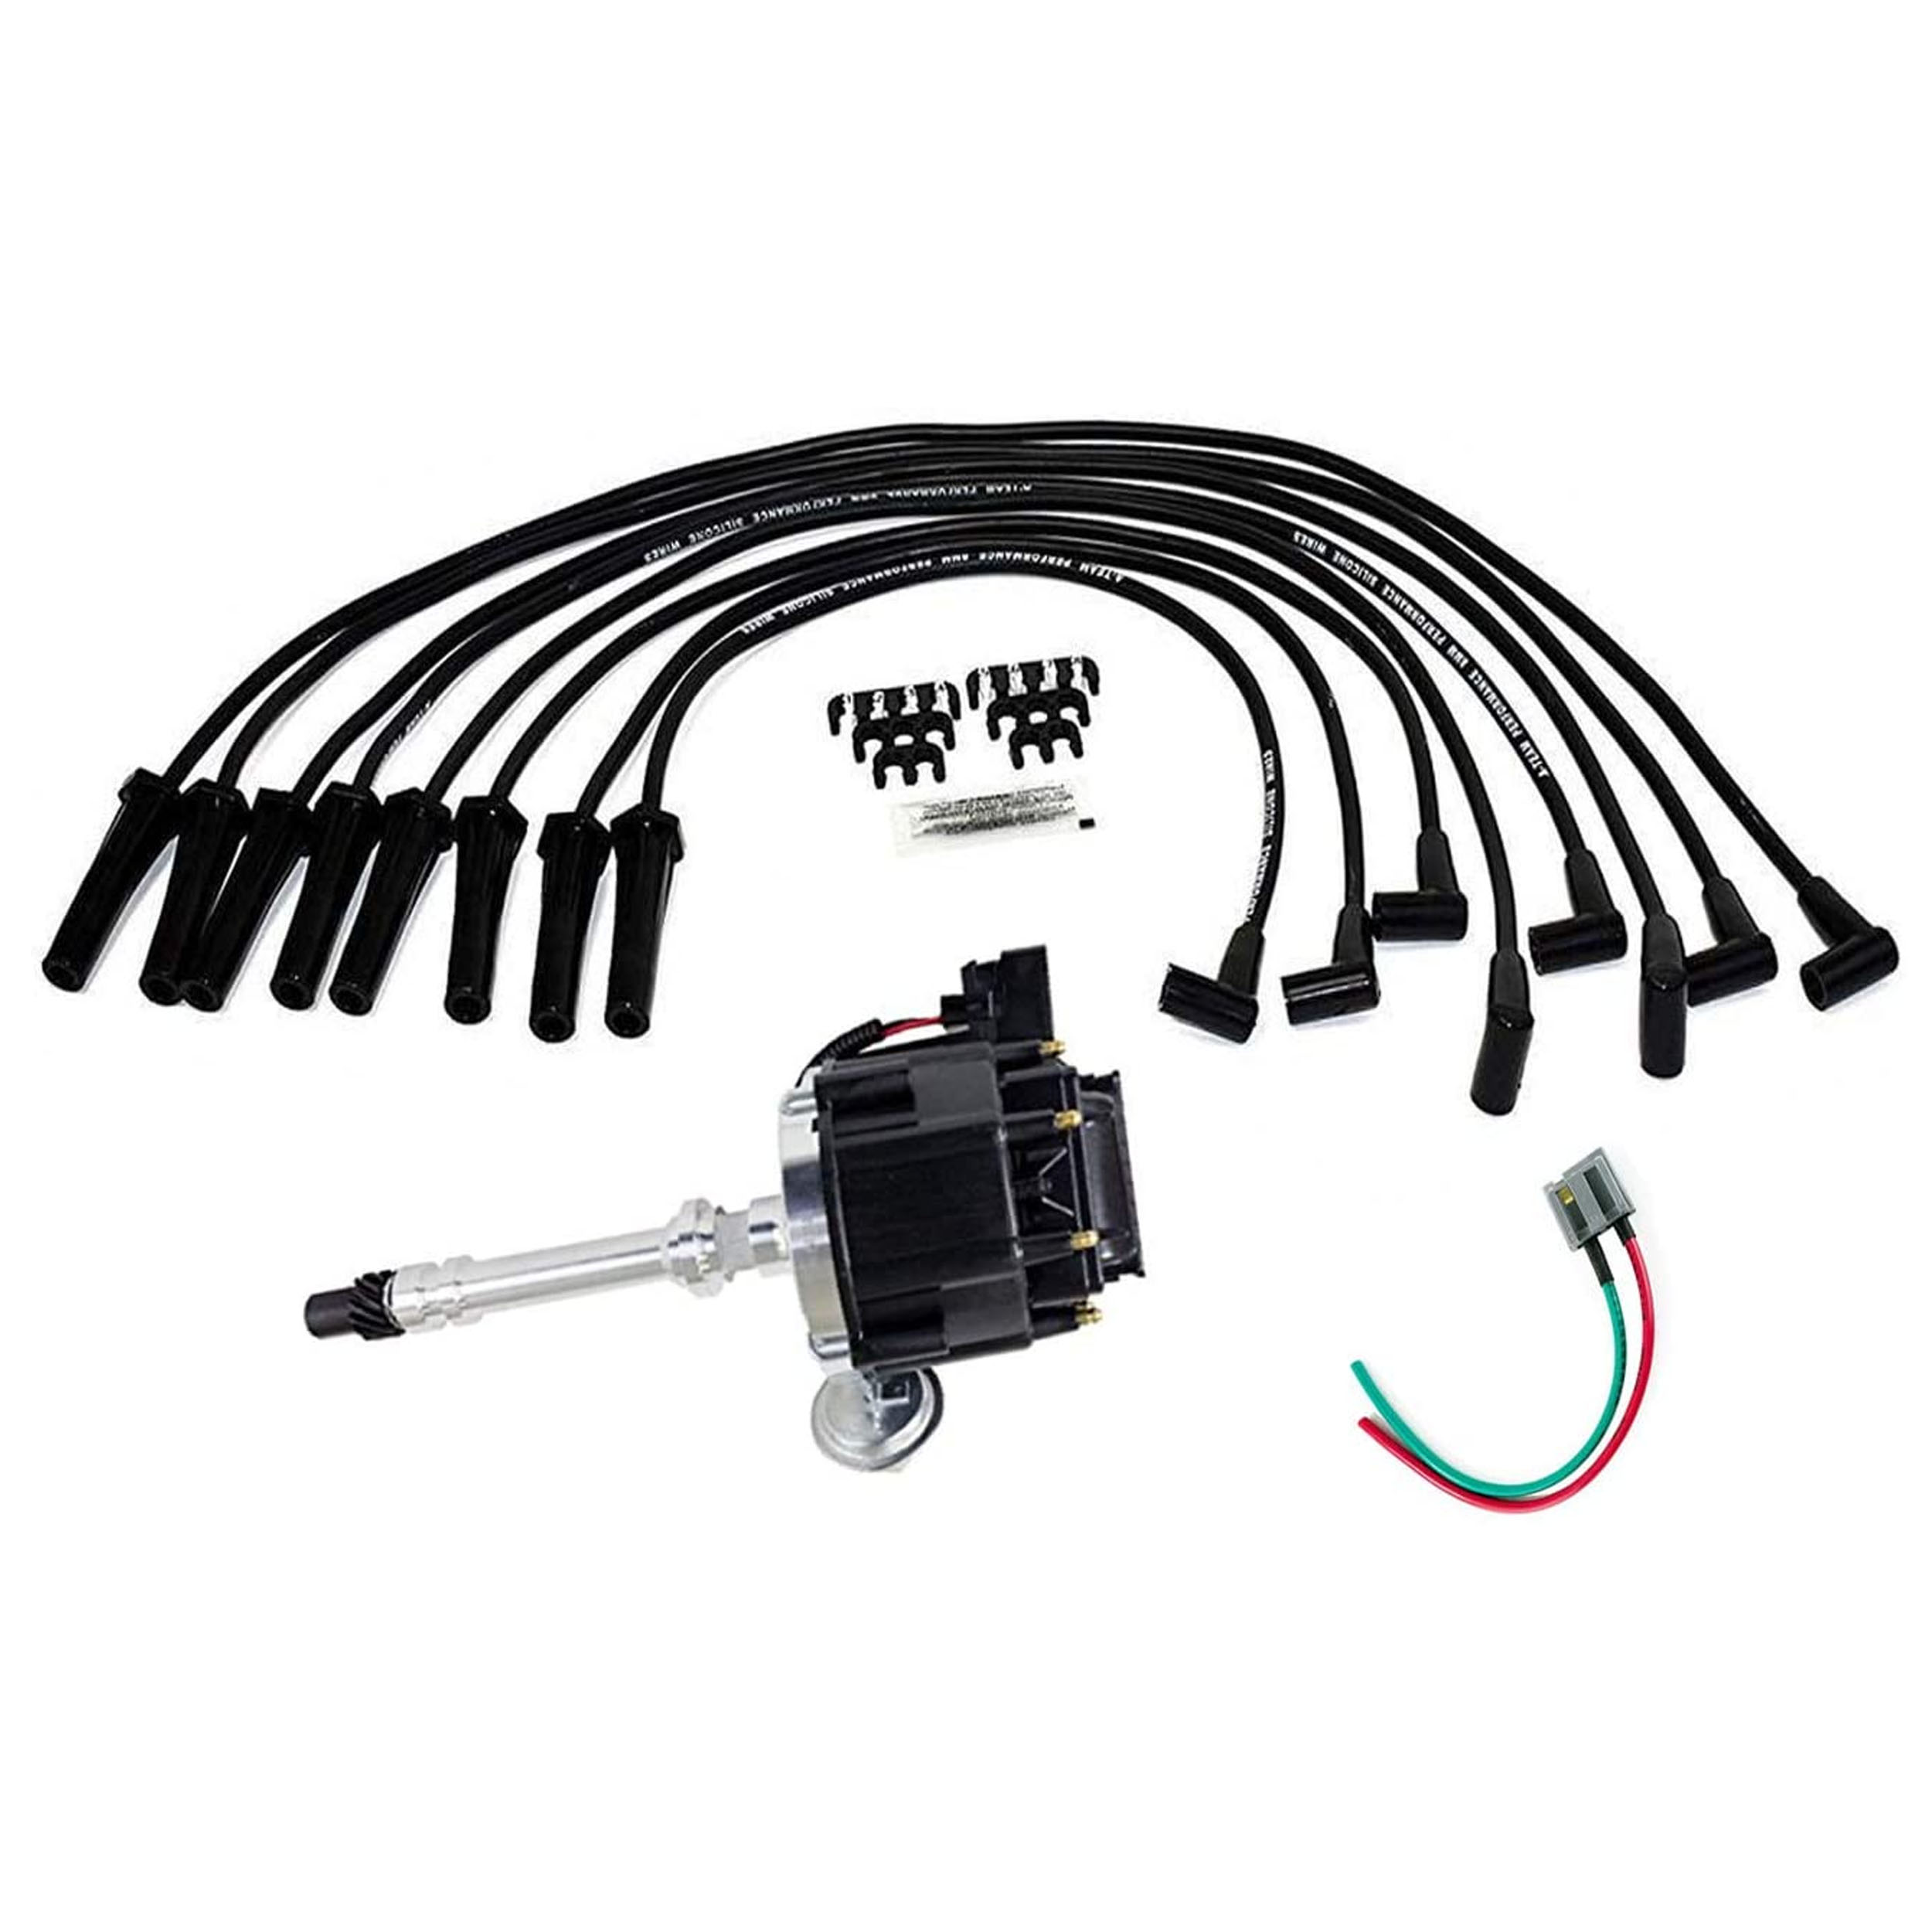 A-Team Performance HEI Distributor Black Cap with Black Spark Plug Wires  Set and Pigtail Wiring Harness Complete Kit Compatible with Chevrolet Chevy  GM GMC Big Block Chevy BBC 396 427 454 | Chevrolet Plug Wiring |  | Southwest Performance Parts